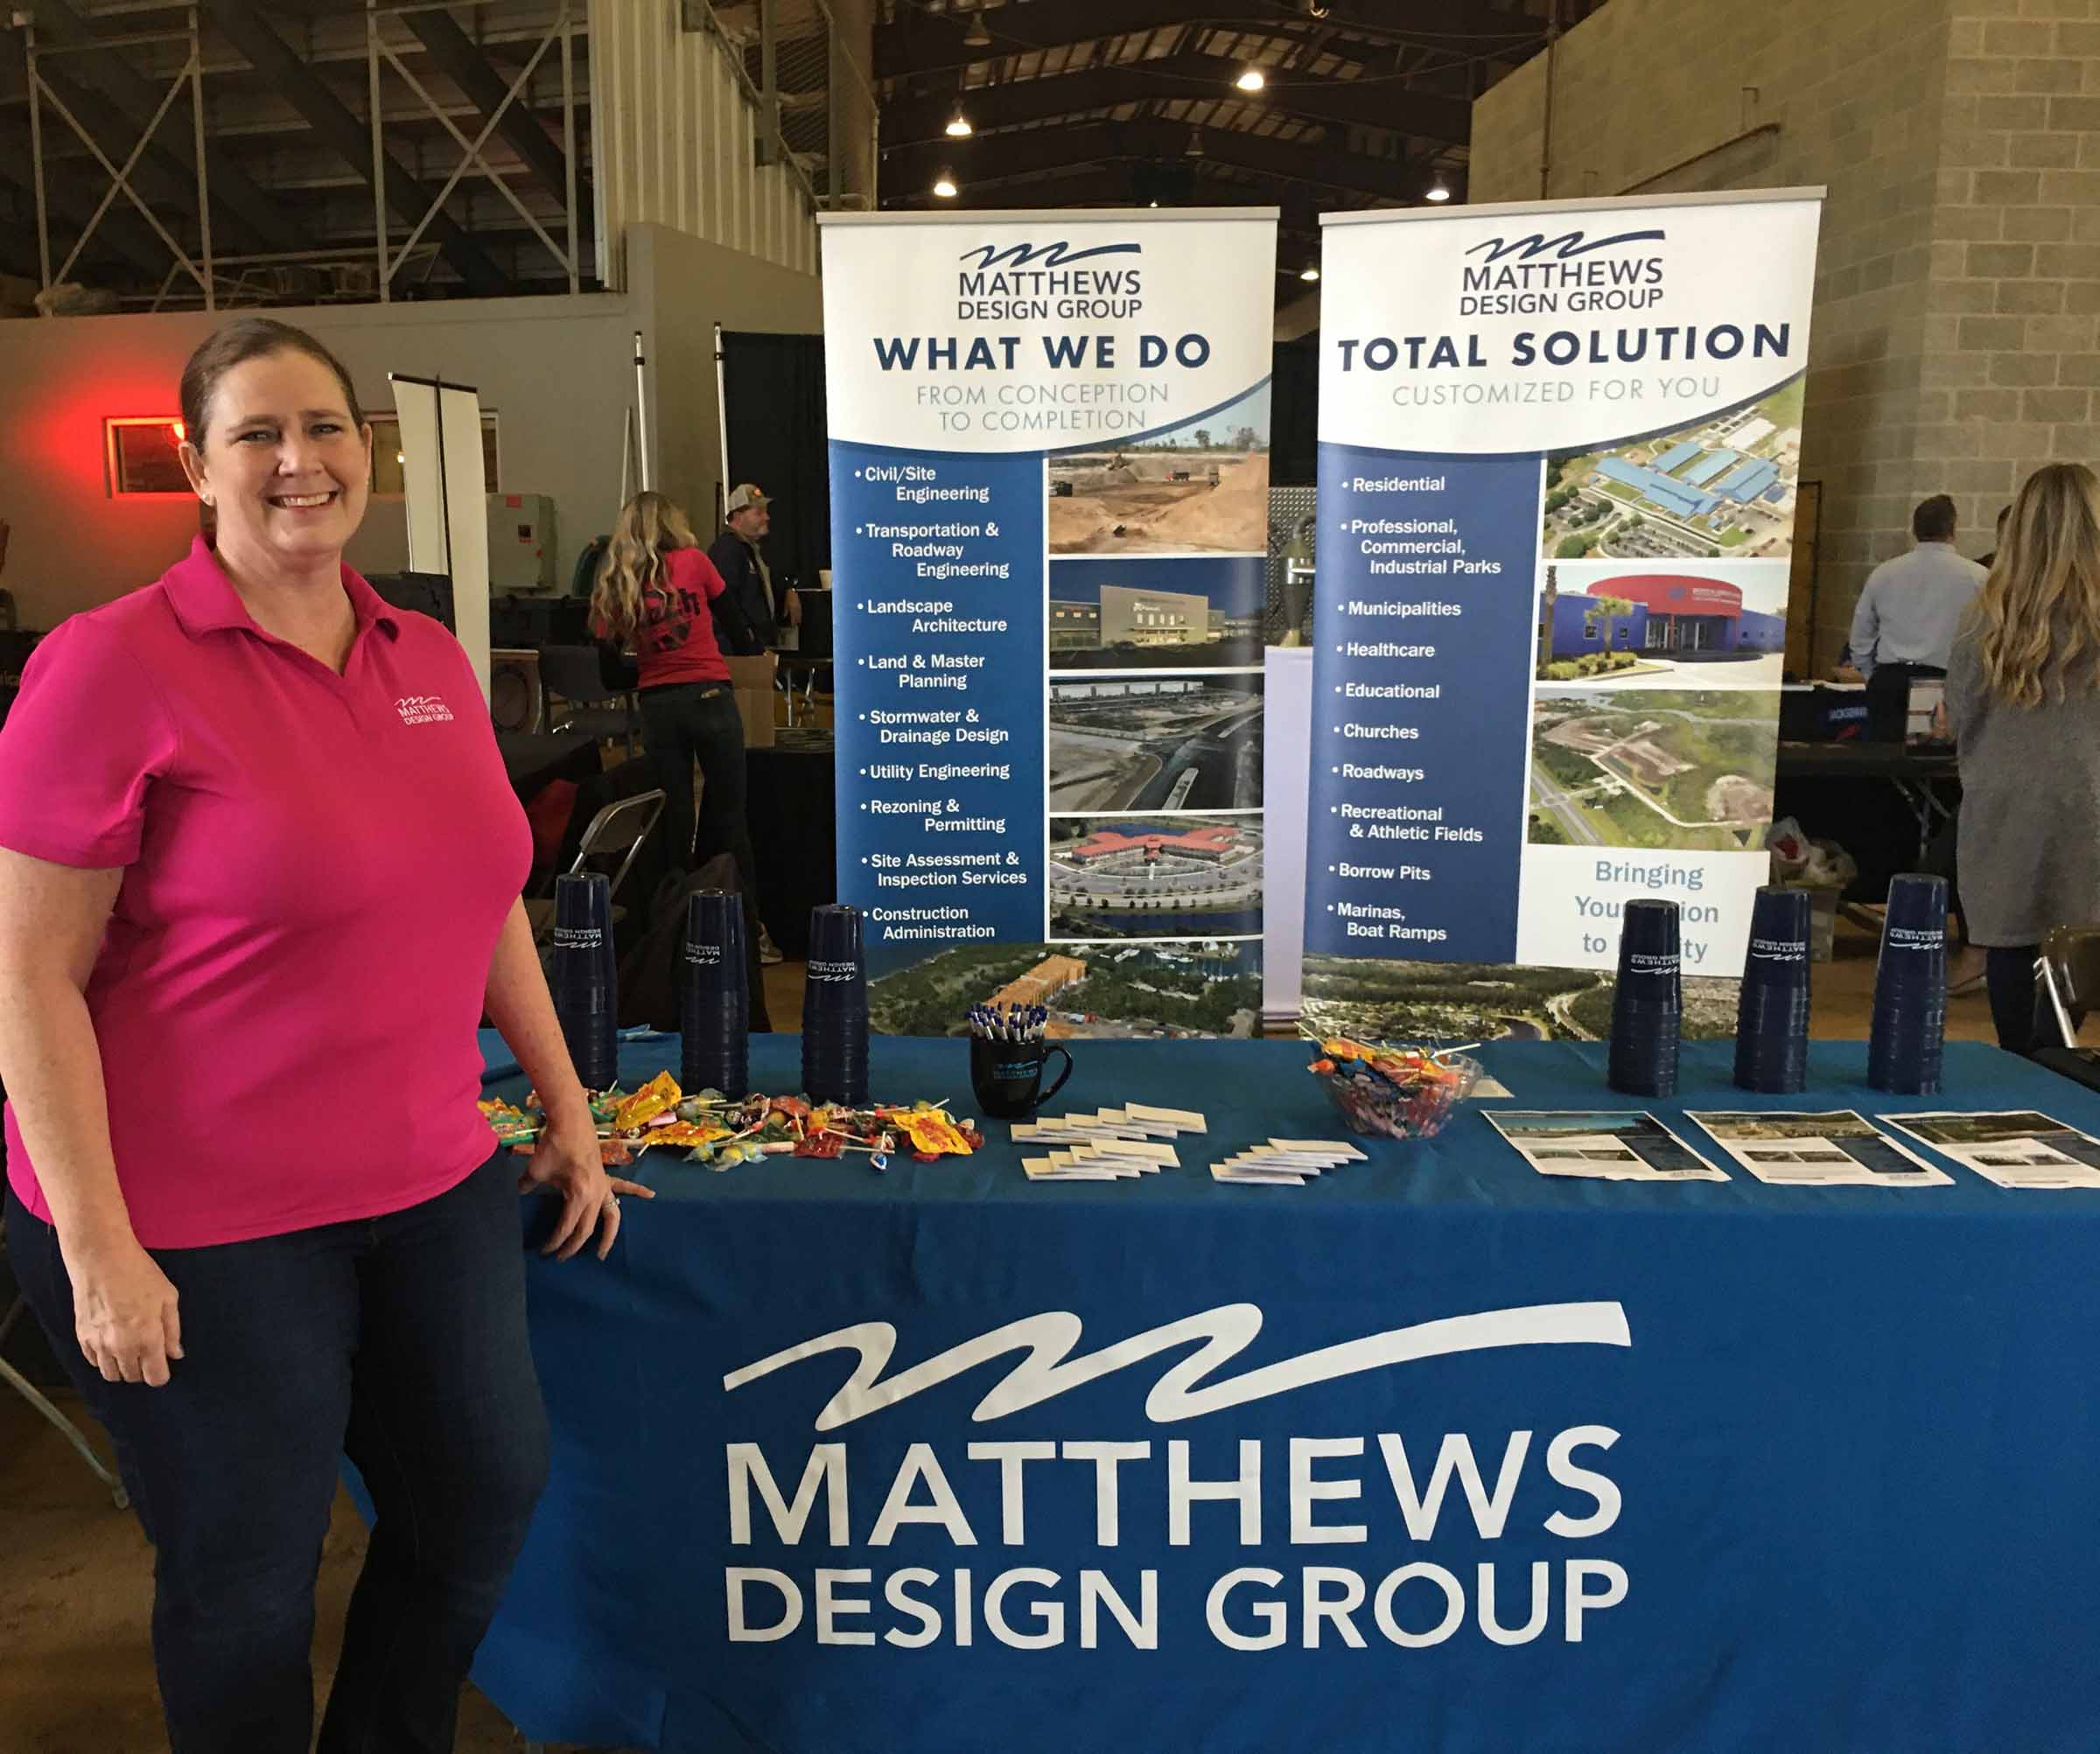 A team member standing in front of a Matthews Design Group Booth.